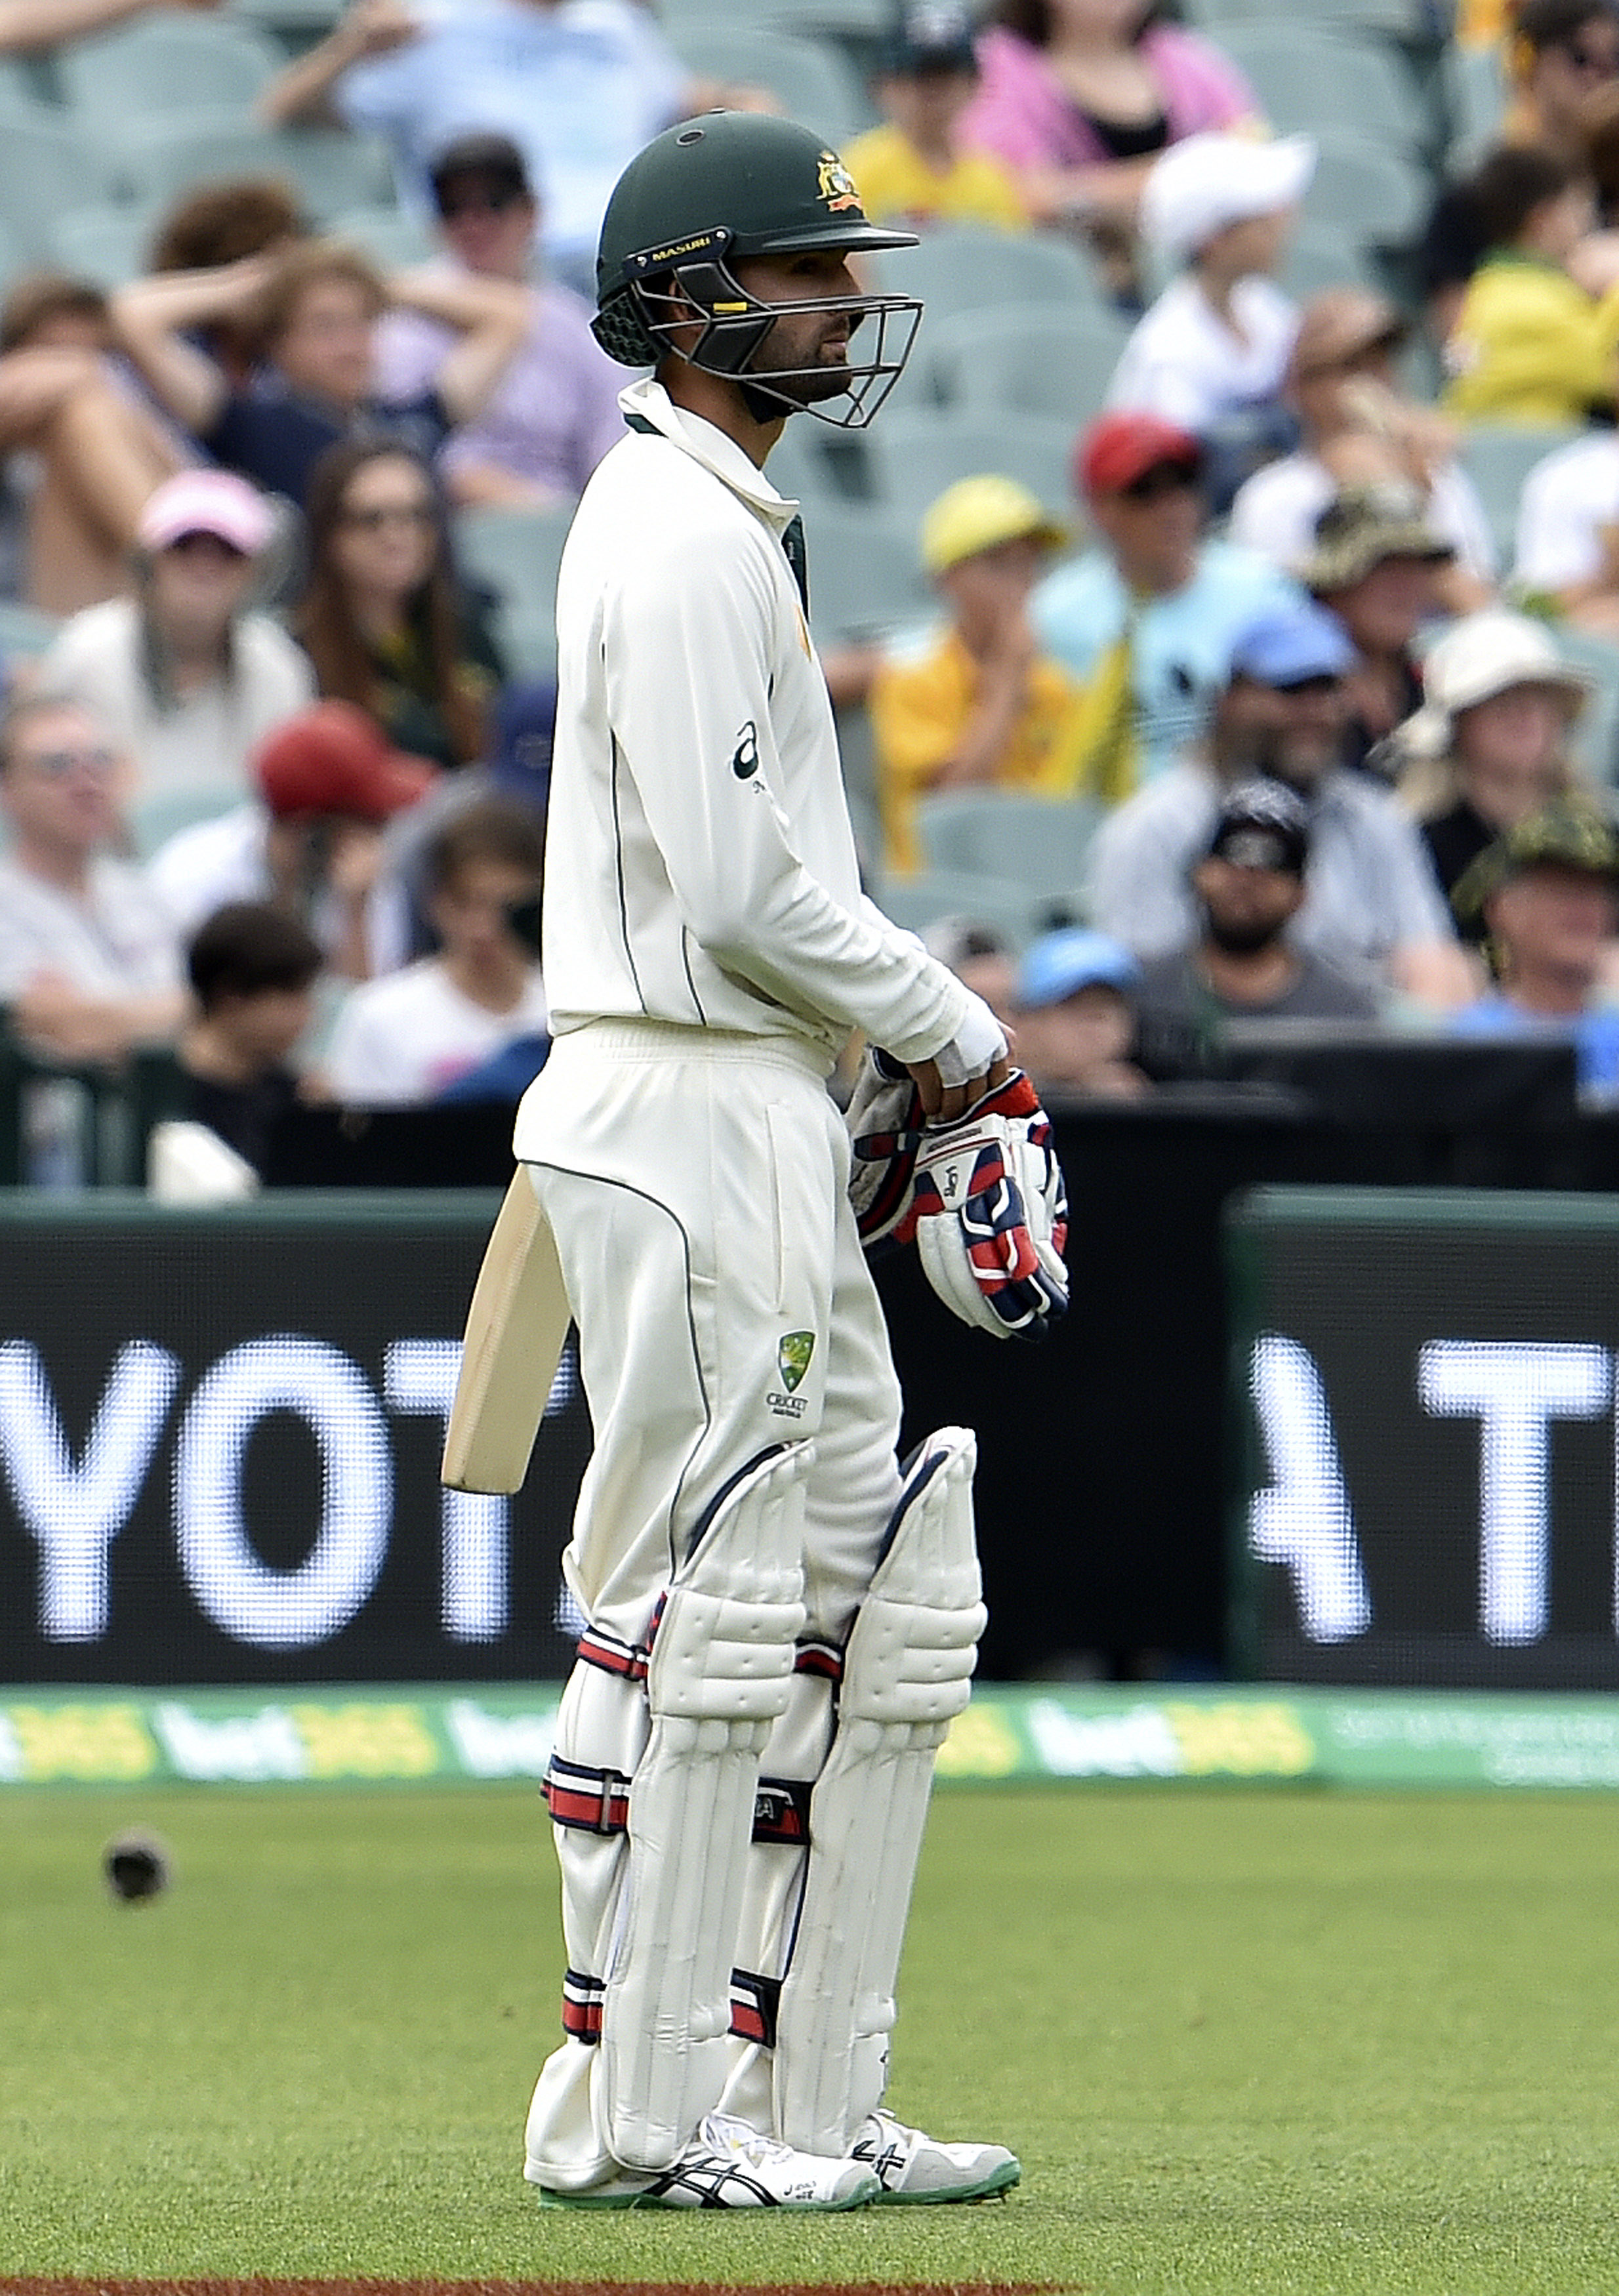 This photo taken on November 28, 2015 show Australia's batsman Nathan Lyon waiting for the decision by TV umpire Nigel Llong at the boundary line during first day-night cricket Test match against New Zealand at the Adelaide Oval. New Zealand have contacted the International Cricket Council seeking answers over a contentious review that went against them at a crucial time in the fluctuating day-night Test against Australia, coach Mike Hesson said on November 30.  AFP PHOTO / SAEED KHAN IMAGE RESTRICTED TO EDITORIAL USE - NO COMMERCIAL USE / AFP / SAEED KHAN